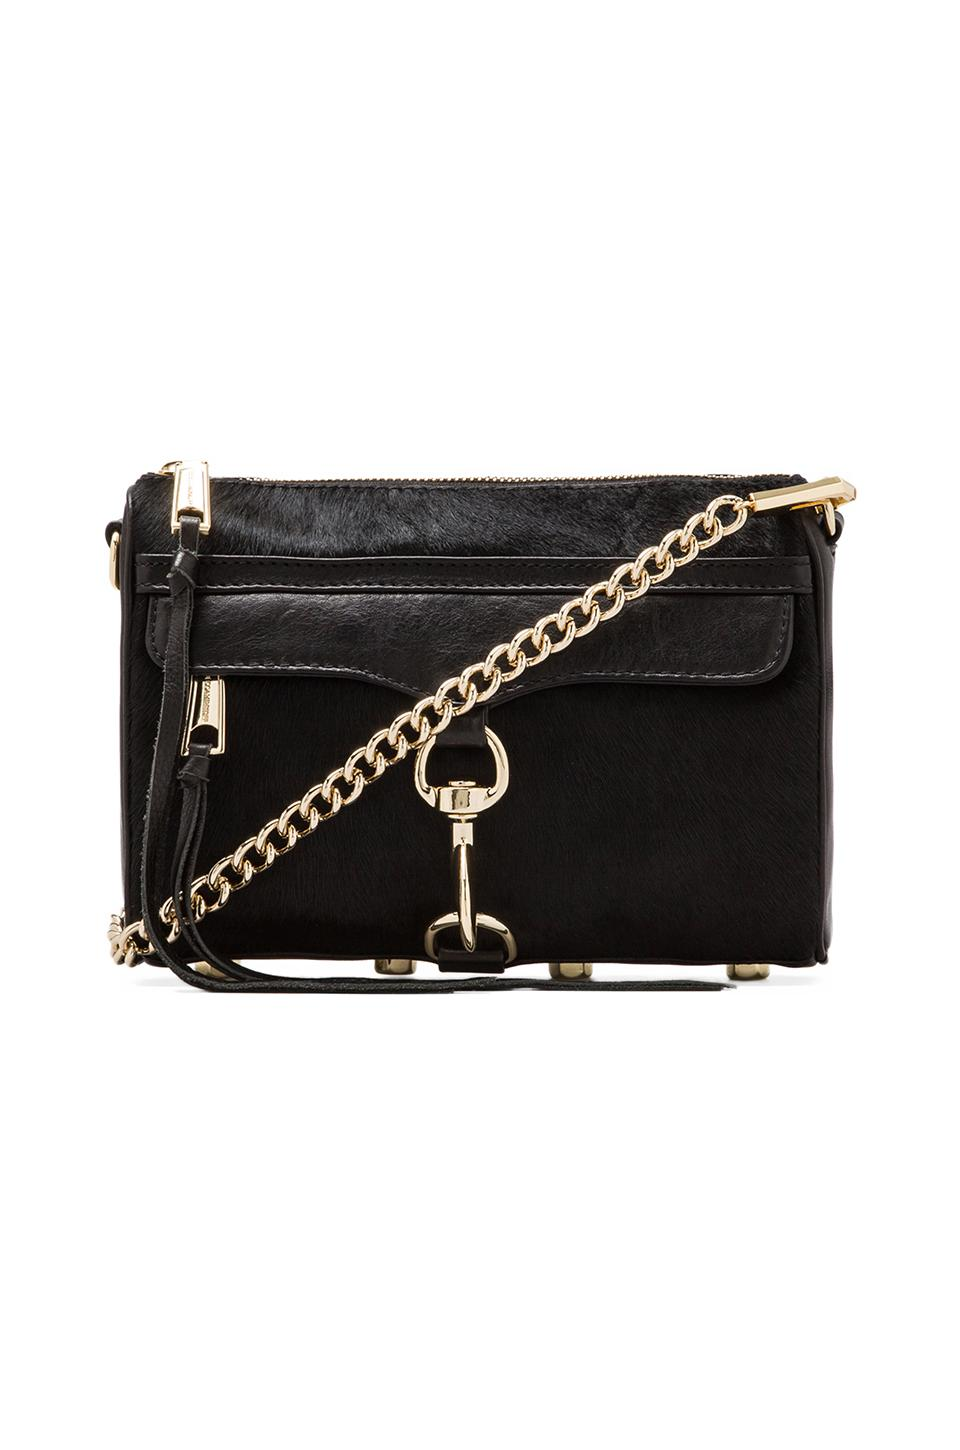 Rebecca Minkoff Haircalf Mini Mac in Black/Black